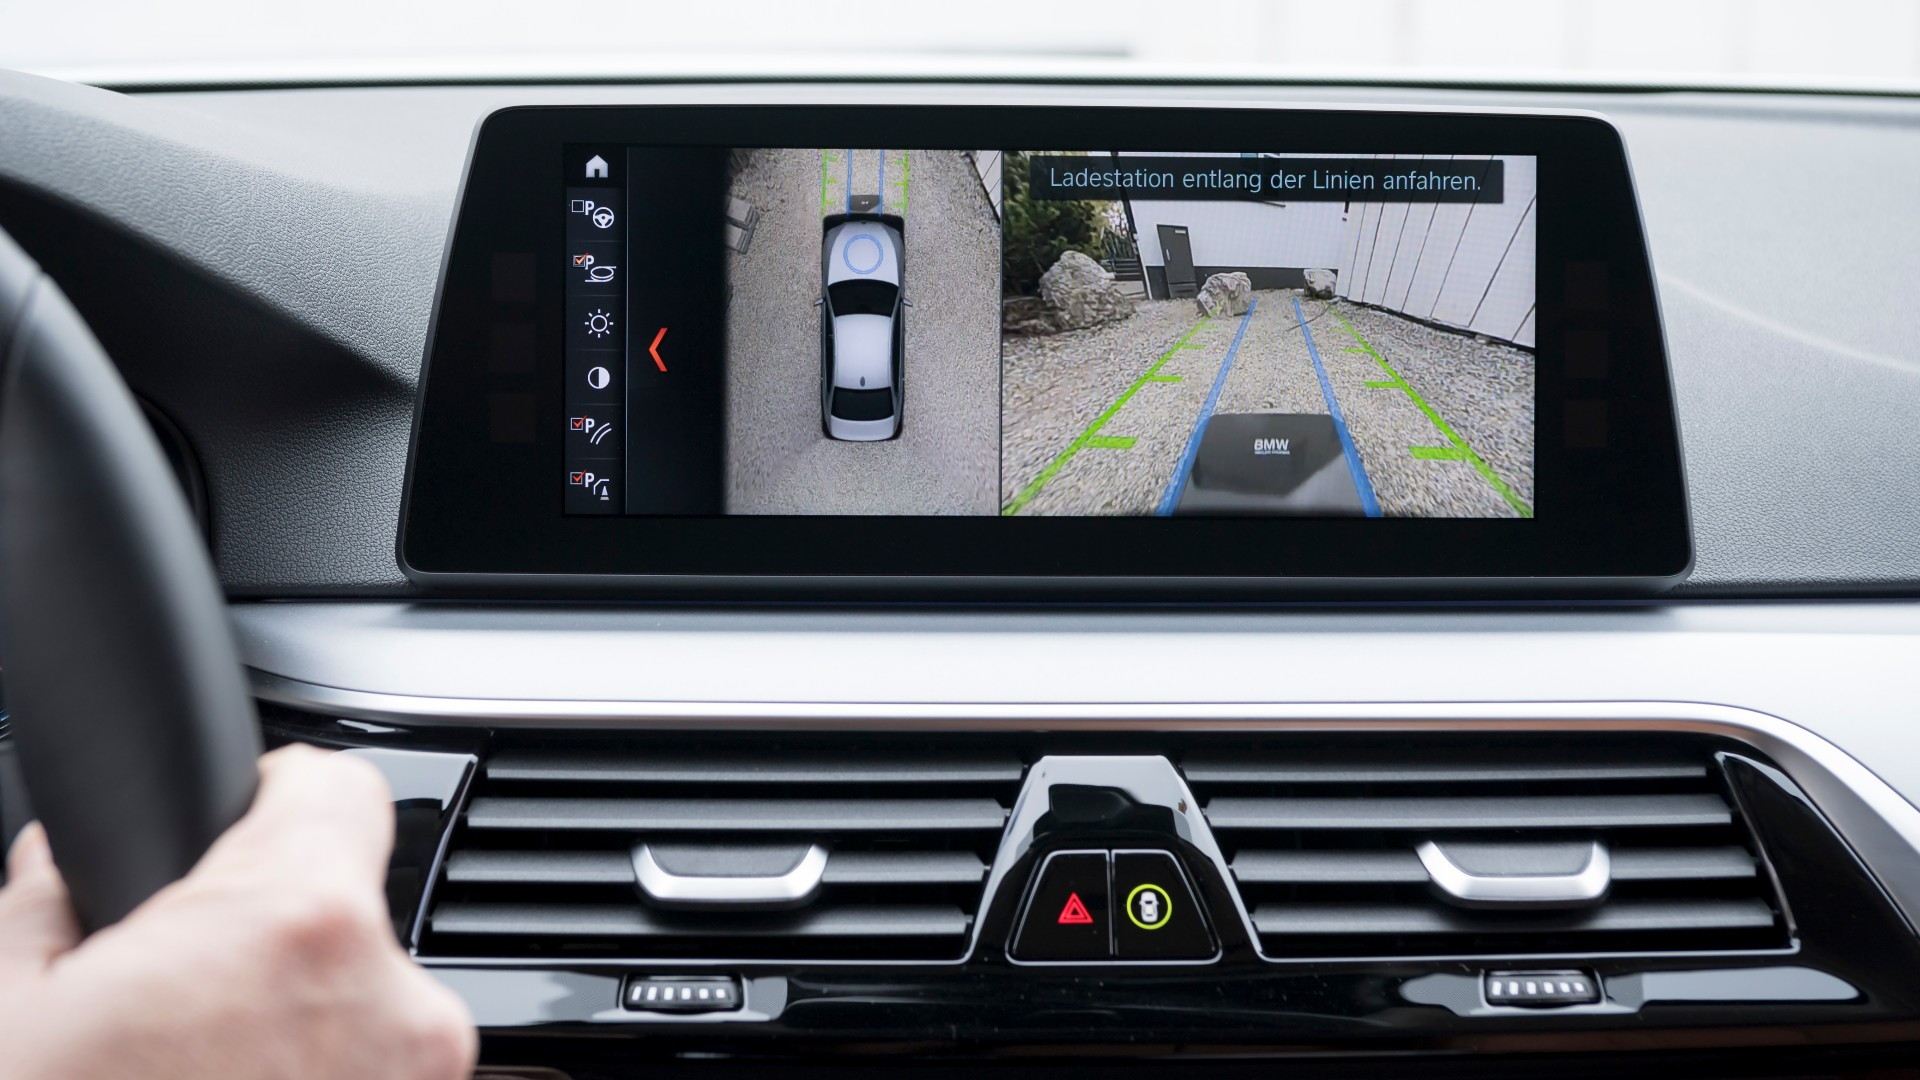 BMW 5-Series plug-in hybrid wireless charging system